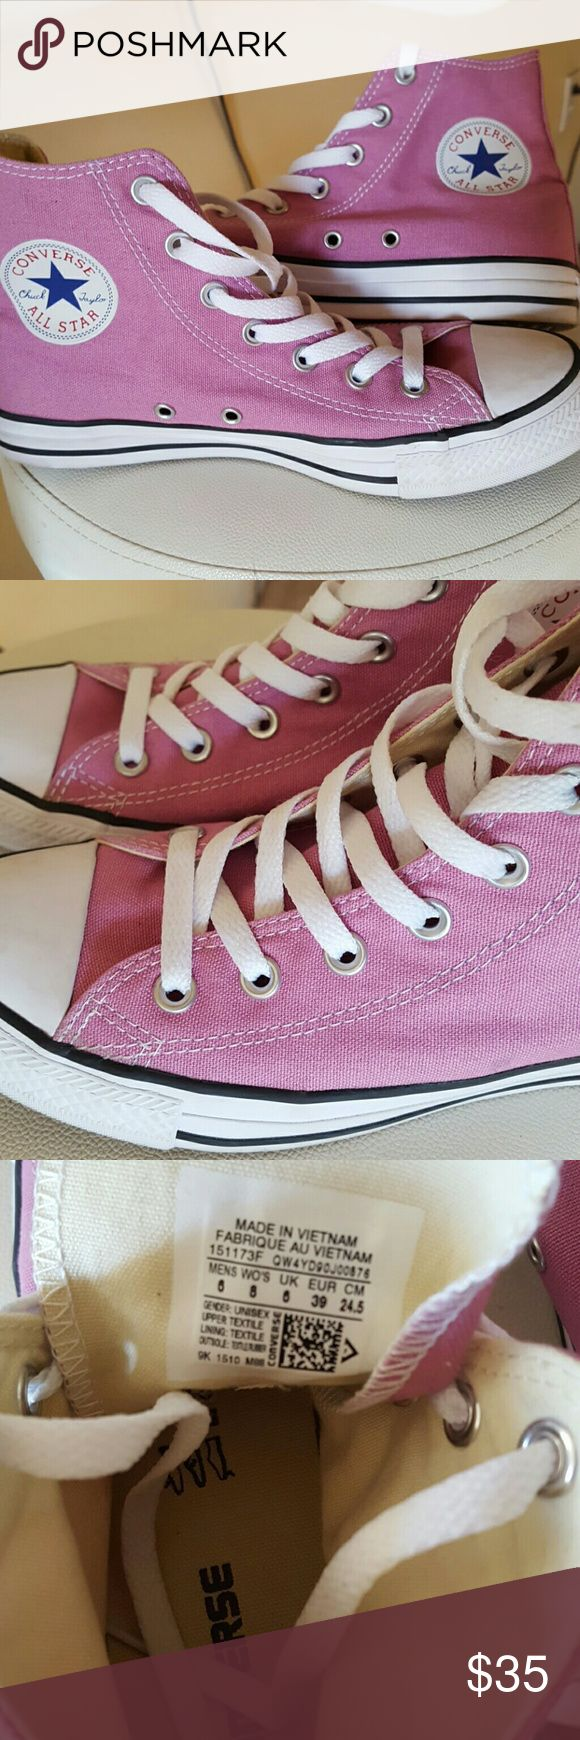 **Sale**Rose Colored High top Converse Excellent condition.  Worn one time indoors. Beautiful color all year round. Only selling because too big for me! Converse Shoes Sneakers